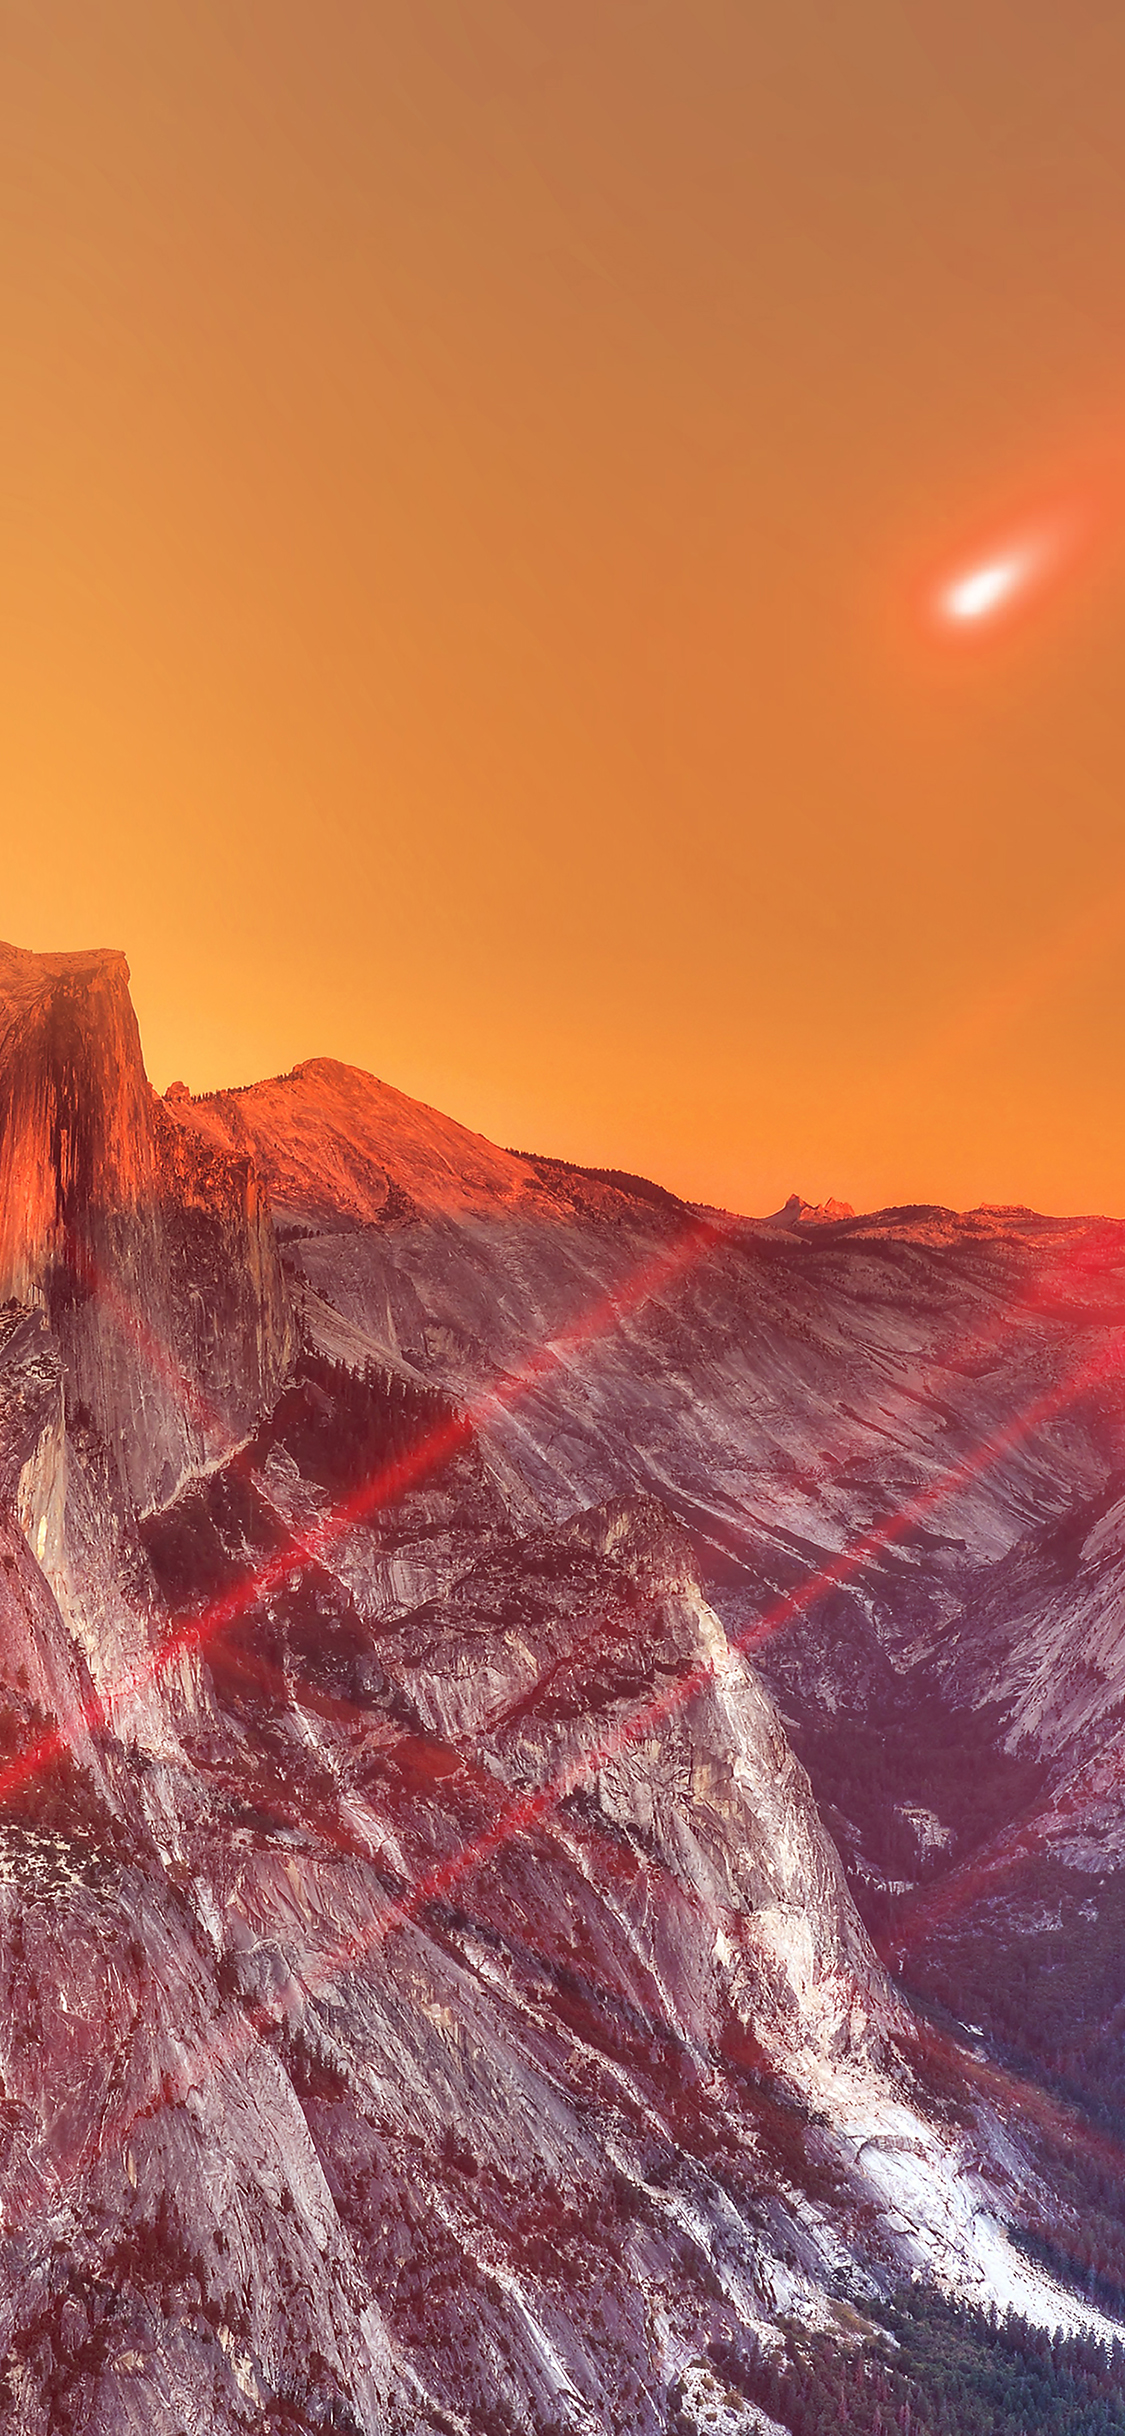 iPhonexpapers.com-Apple-iPhone-wallpaper-mm27-yosemite-mountain-art-red-flare-sky-nature